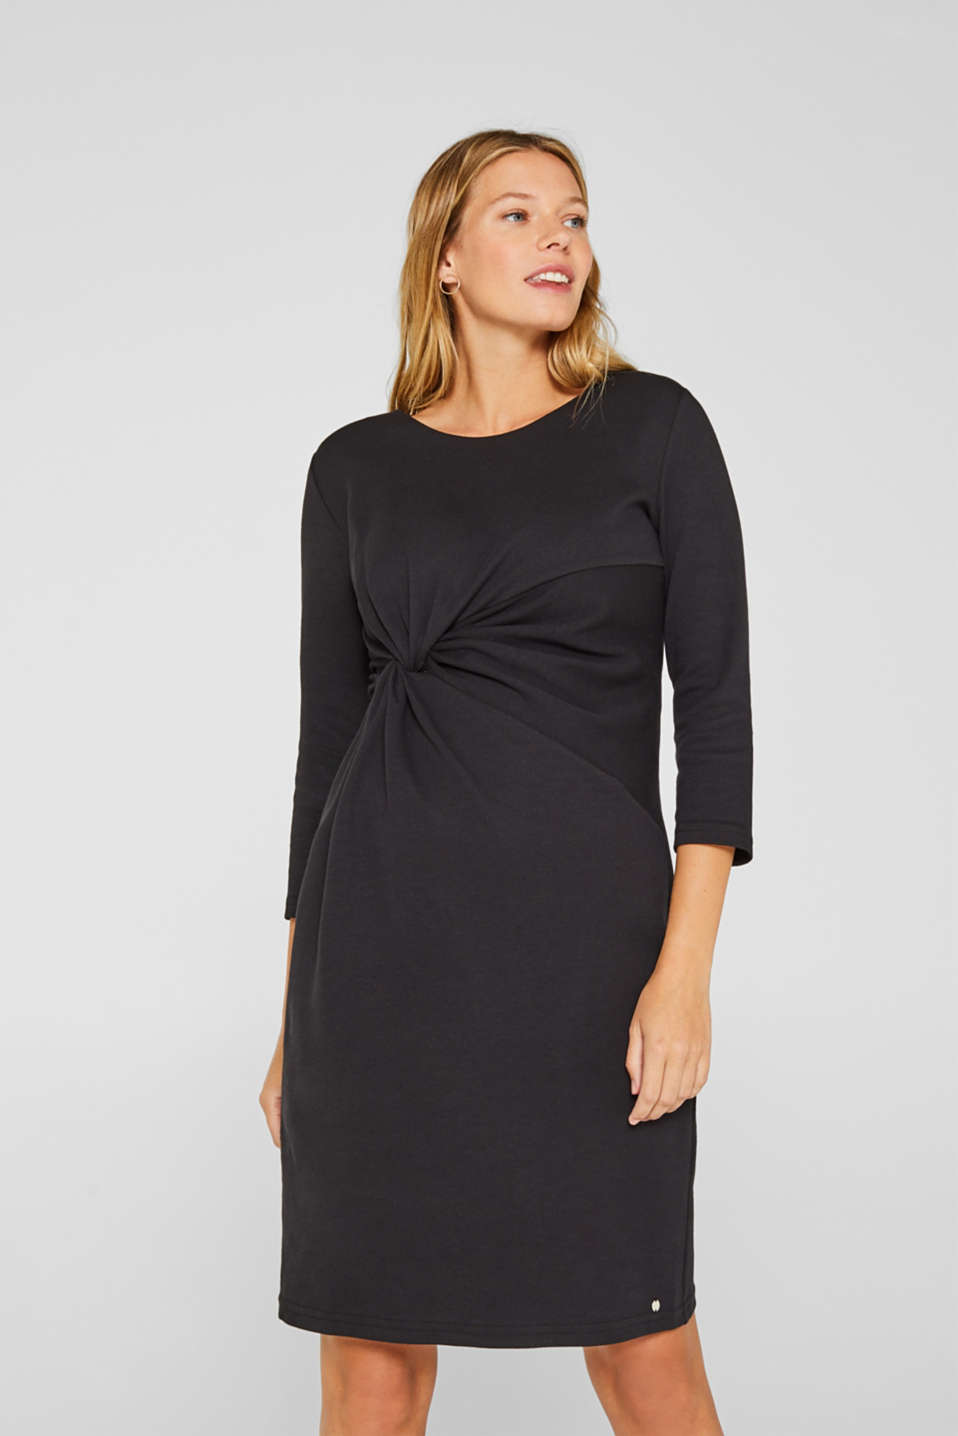 Draped stretch jersey dress, LCBLACK, detail image number 0